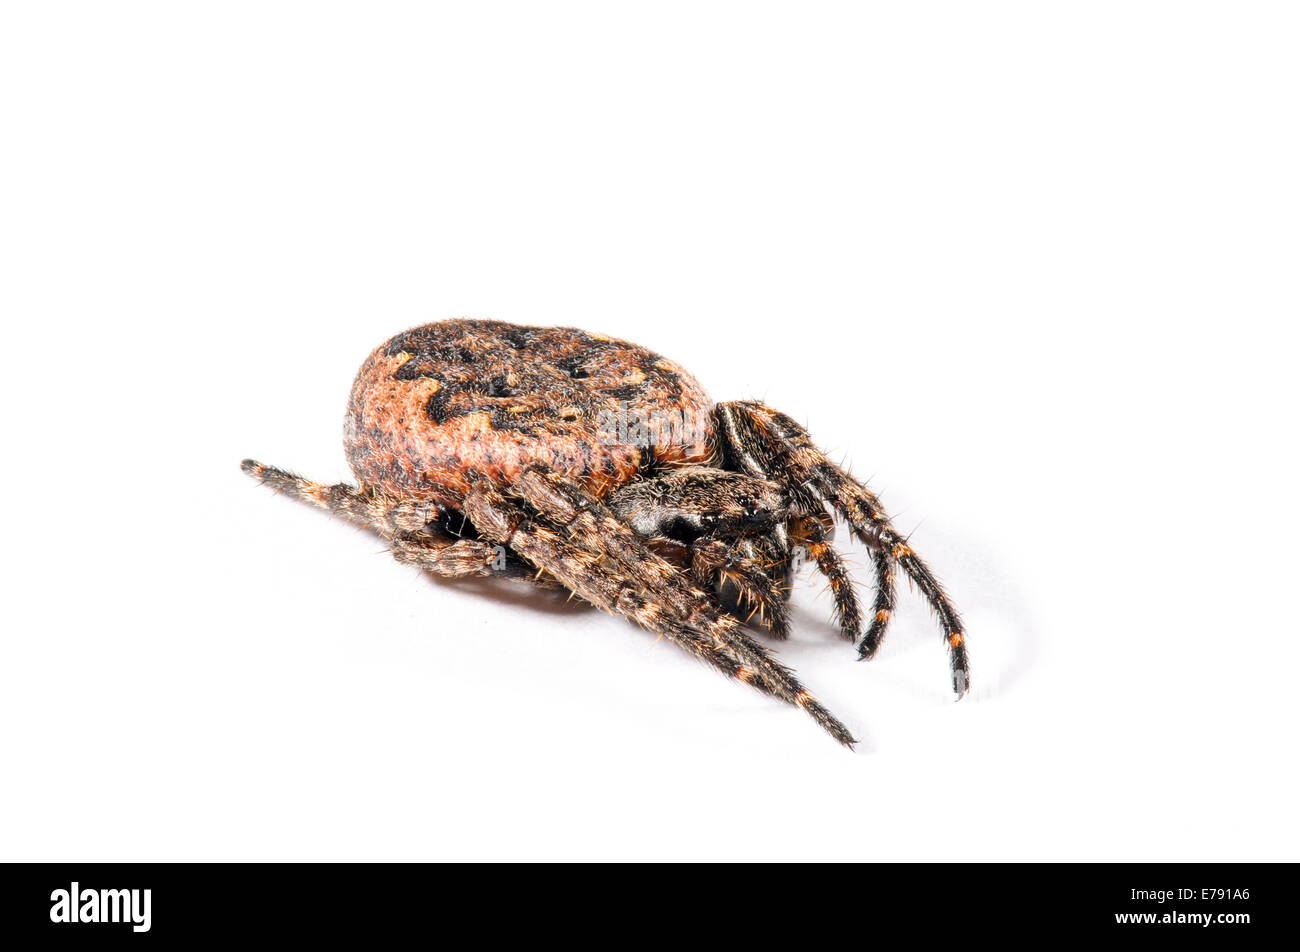 Walnut orb-weaver spider (Nuctenea umbratica) adult female photographed against a white background in Sowerby, North - Stock Image